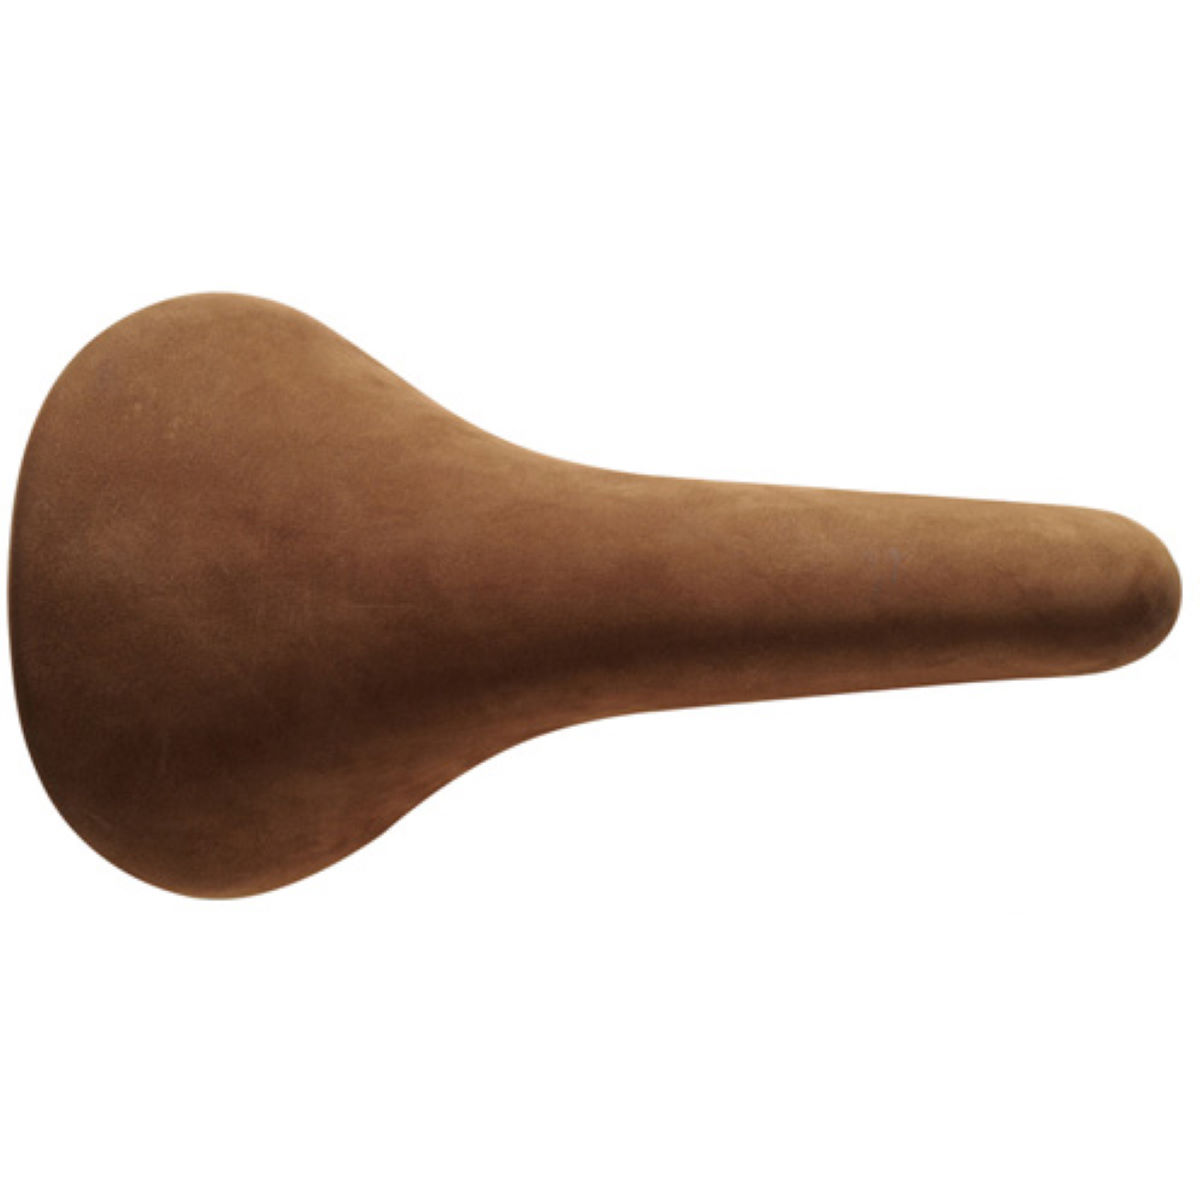 Selle Italia Turbo 1980 en cuir - W 140mm x L 270mm Tan